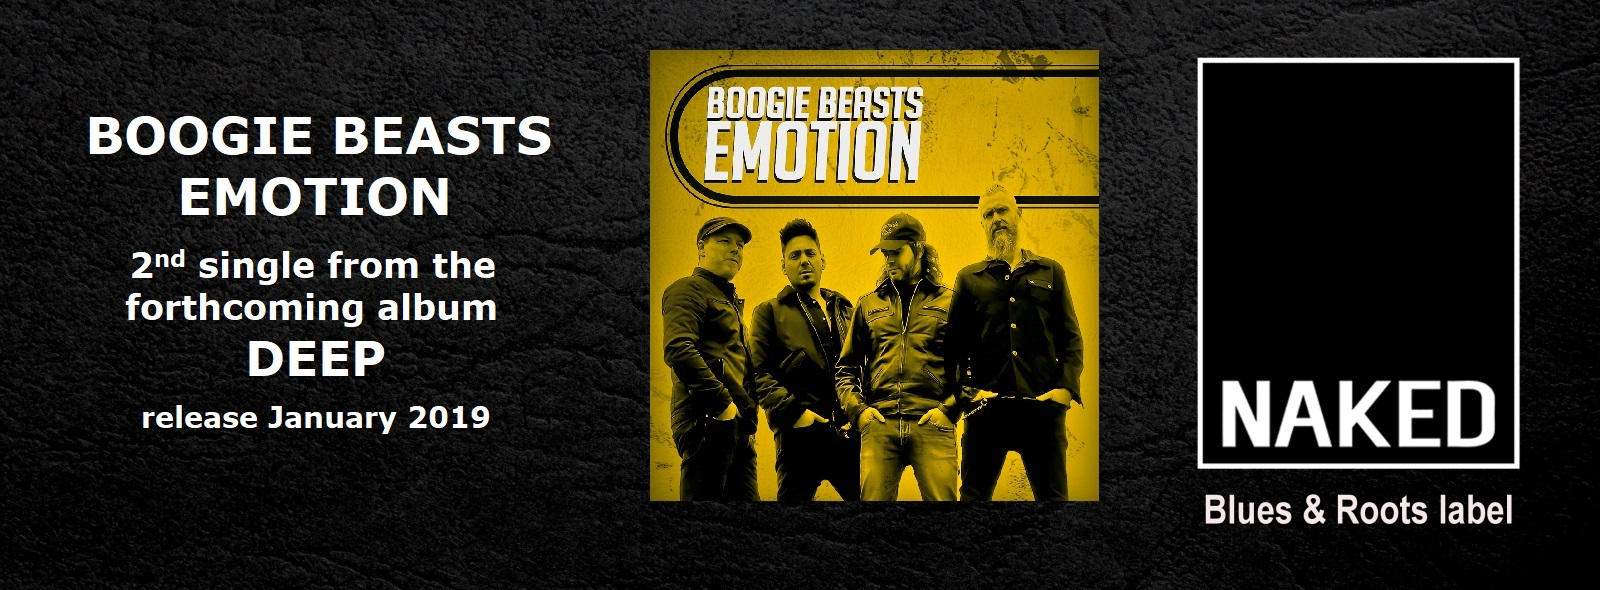 Boogie Beasts – Emotion